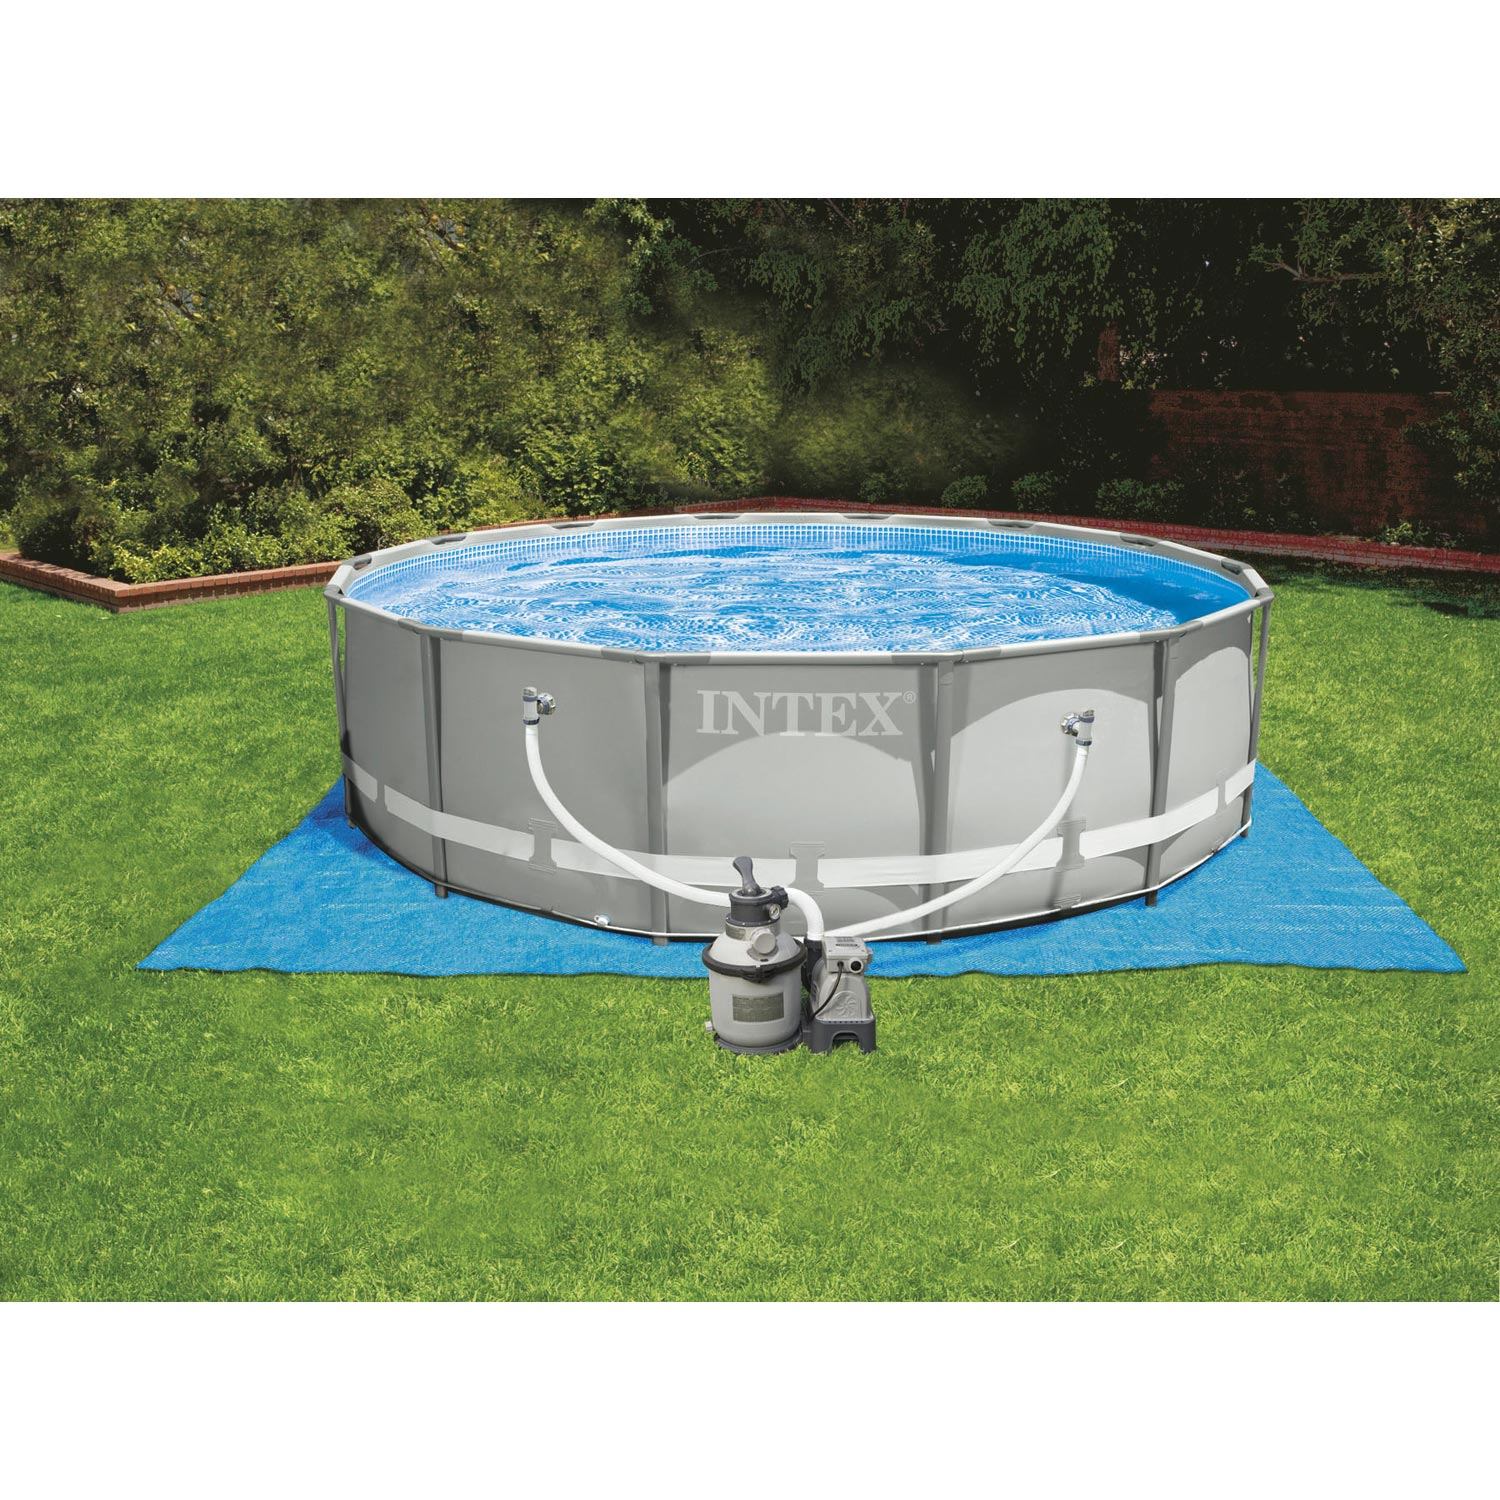 Piscine hors sol autoportante tubulaire ultra frame intex for Auchan piscine gonflable